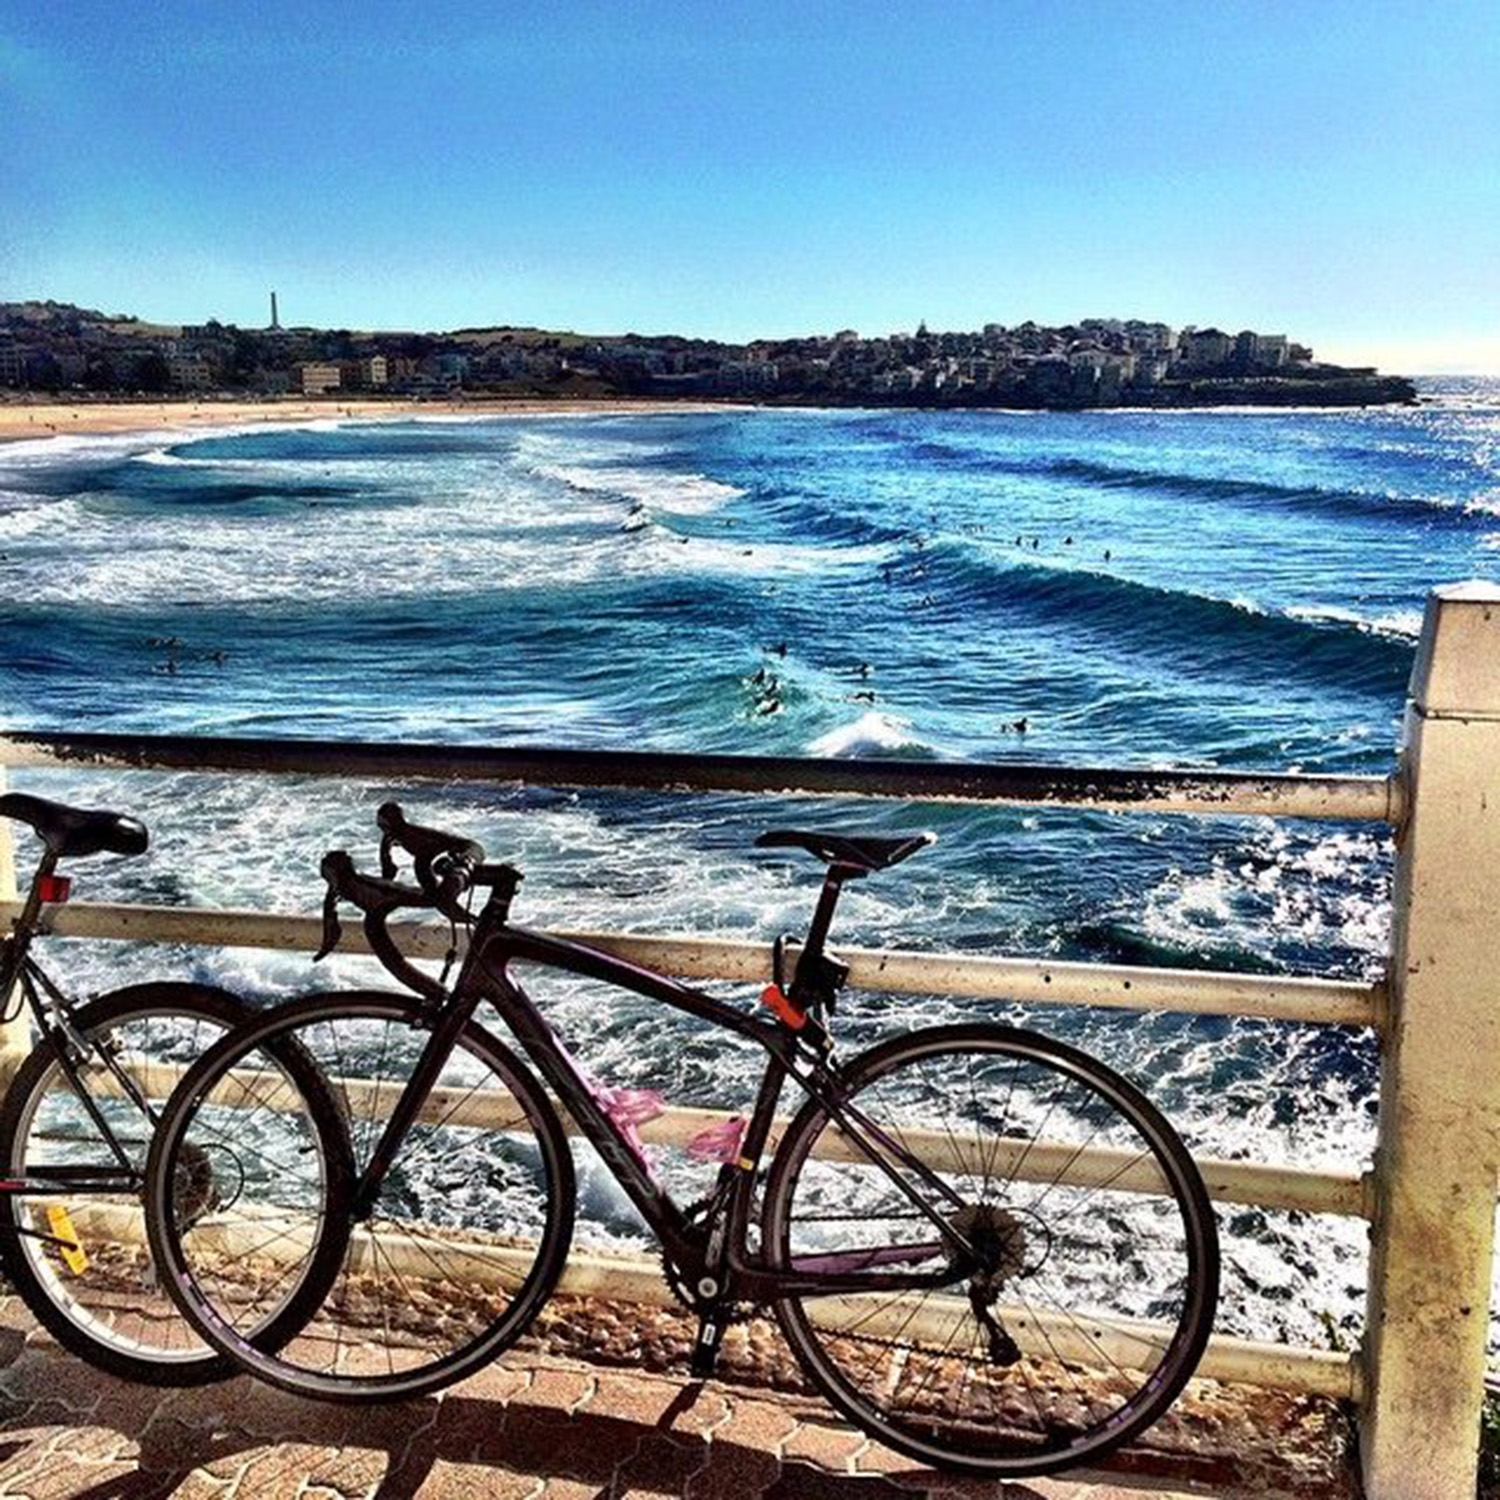 Bikes parked along the railings above Bondi Beach